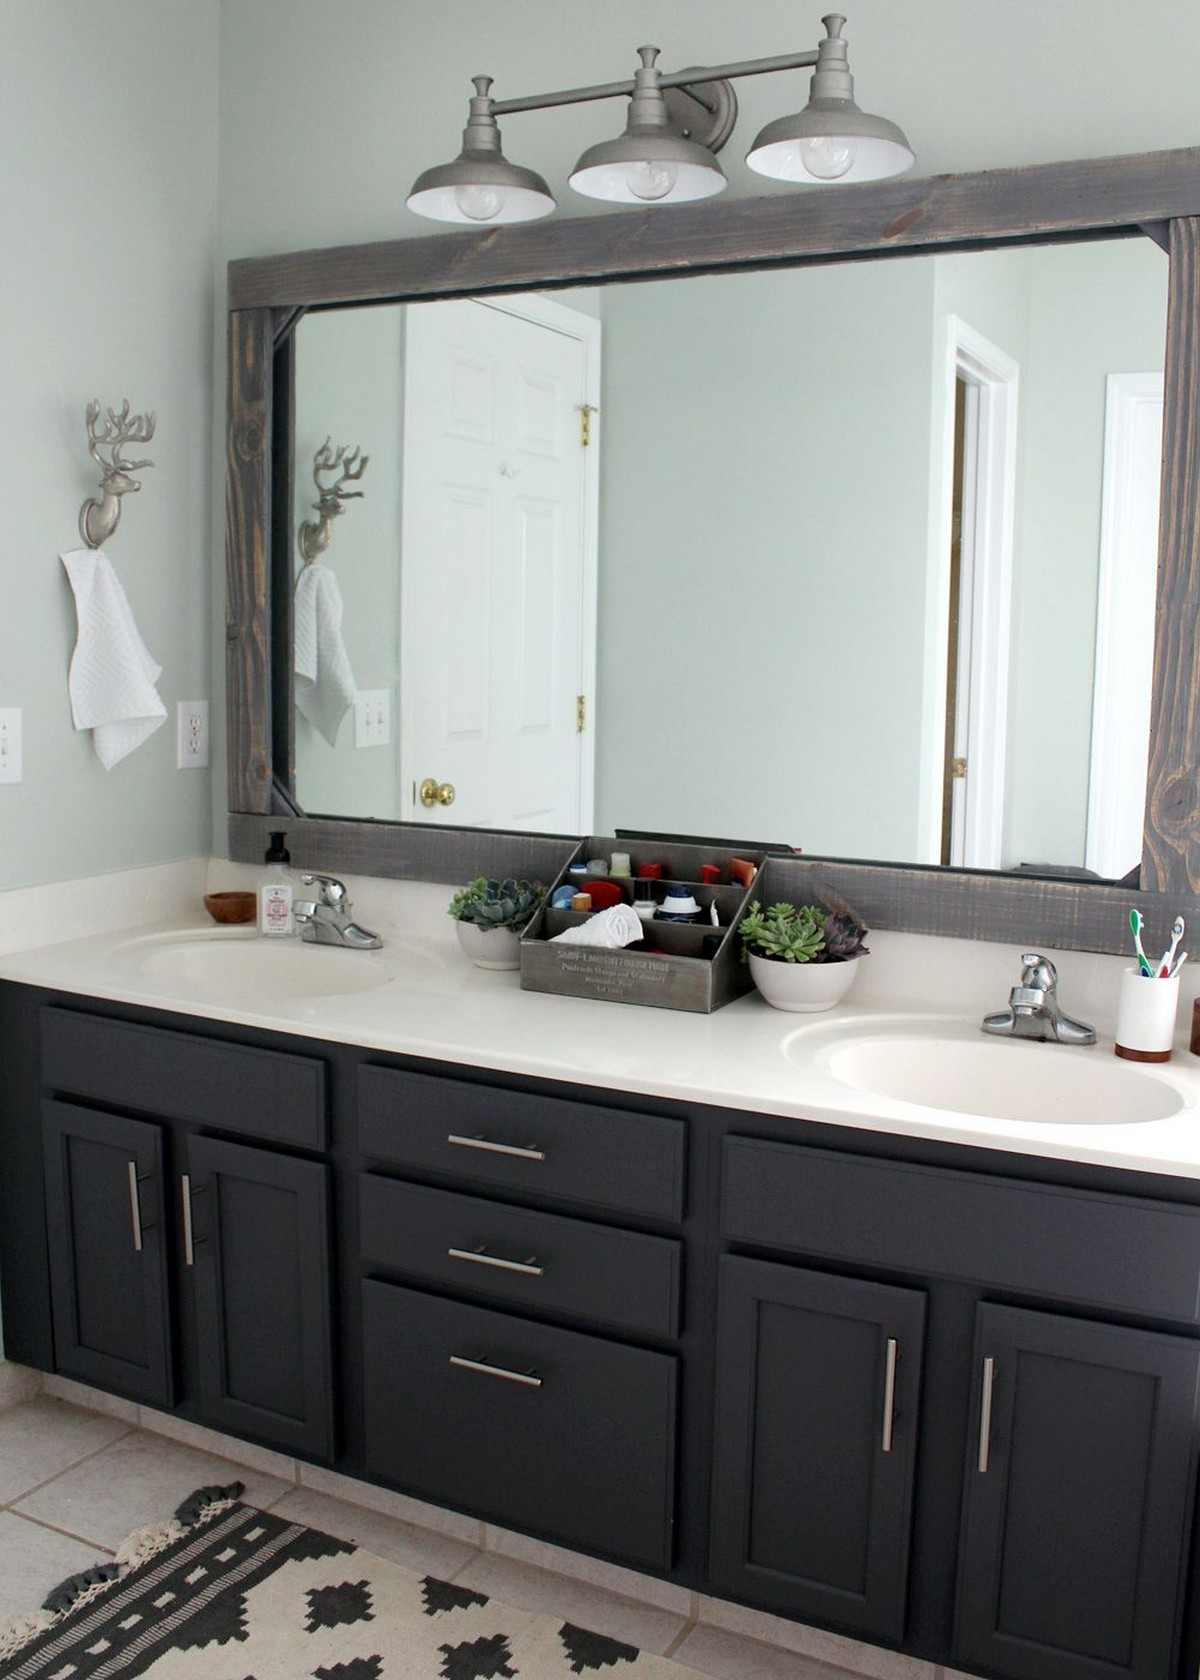 70 Master Bathroom Remodeling For Man and Woman Home Decor 3